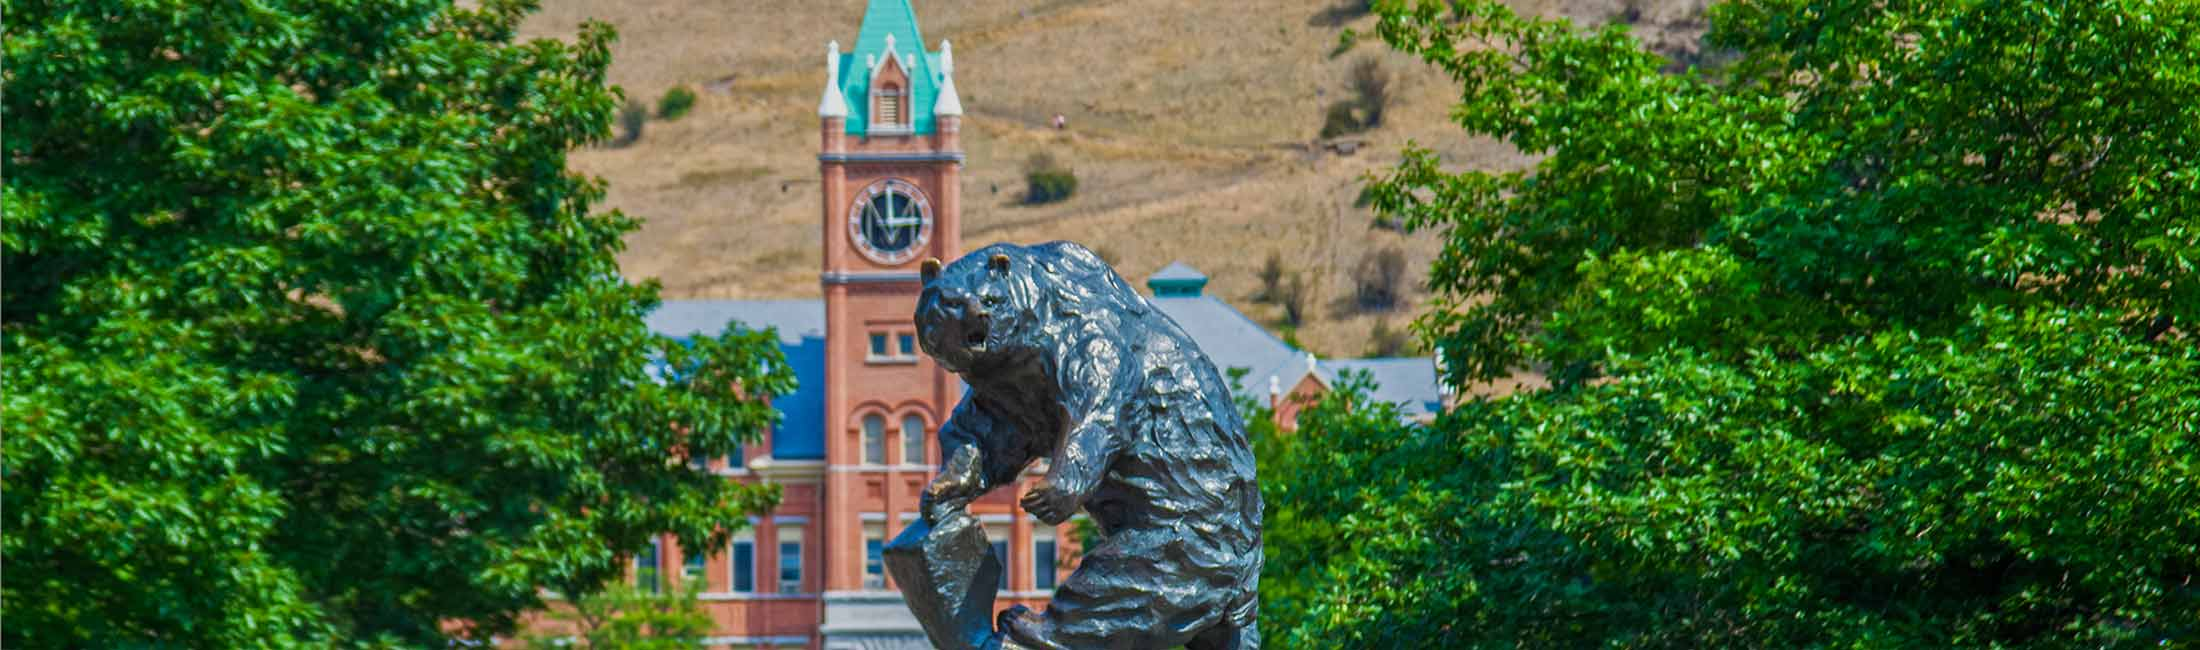 University of Montana in Missoula, Montana